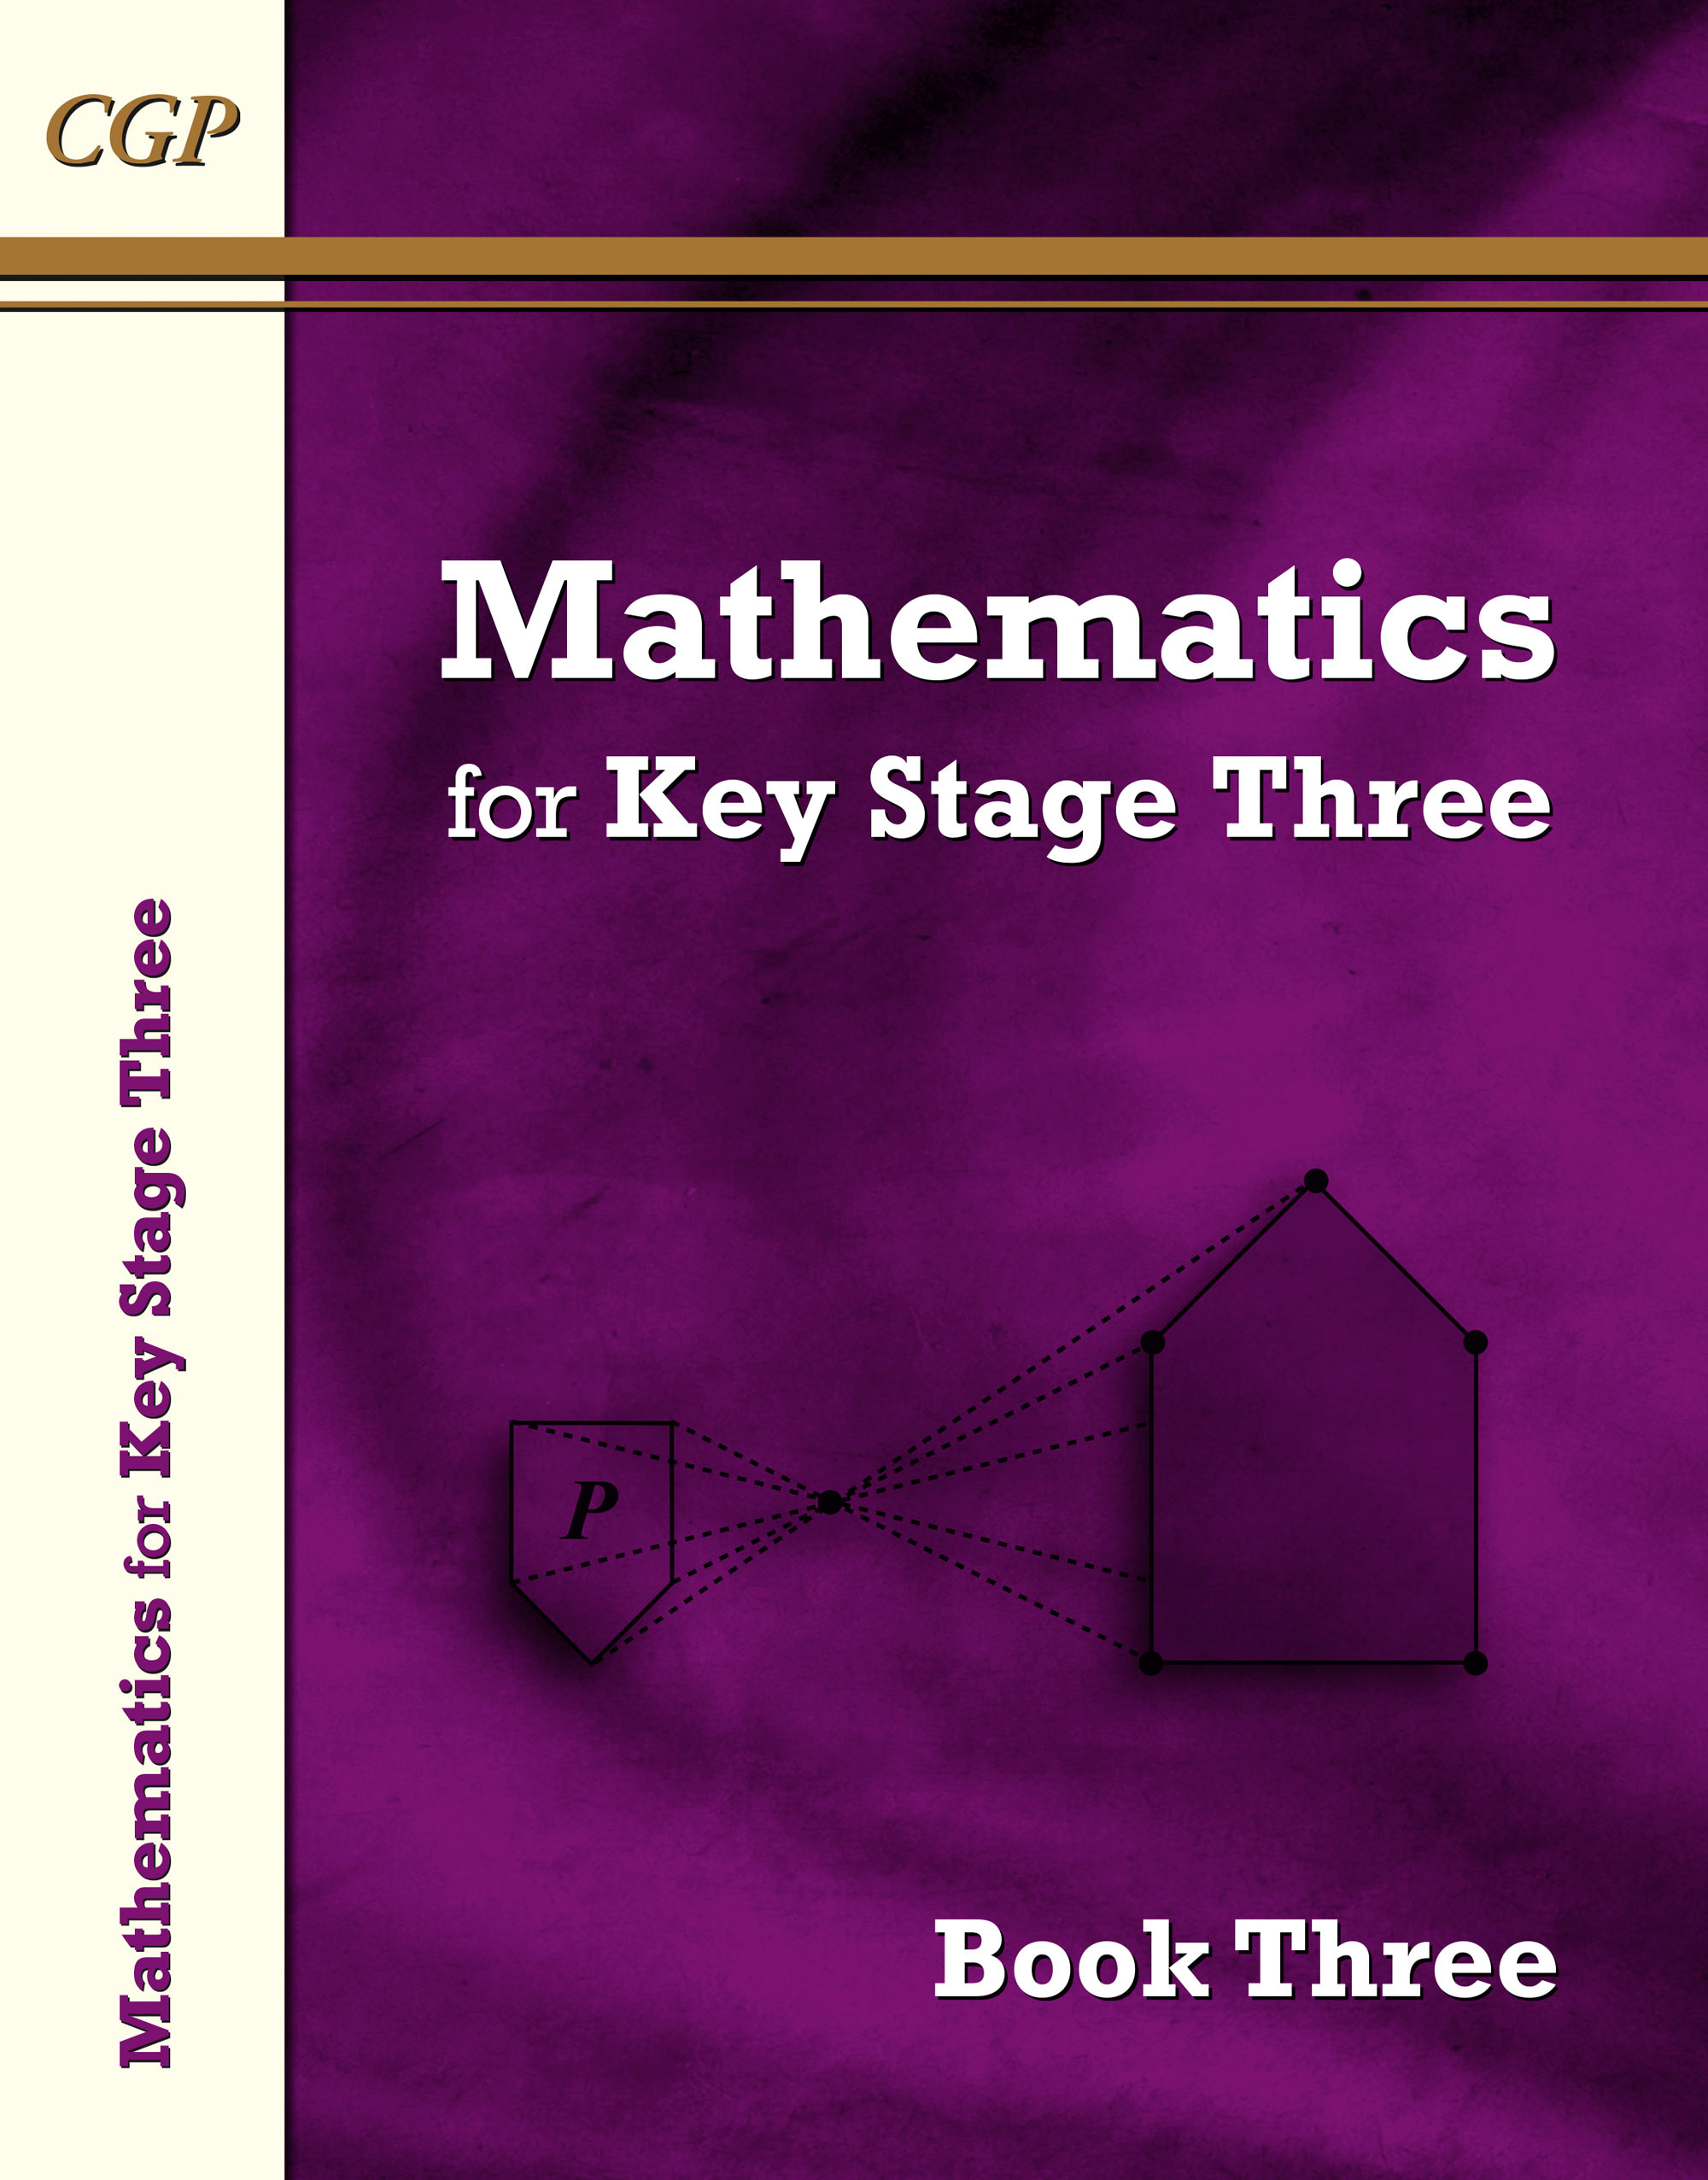 M3NN31DK - KS3 Maths Textbook 3